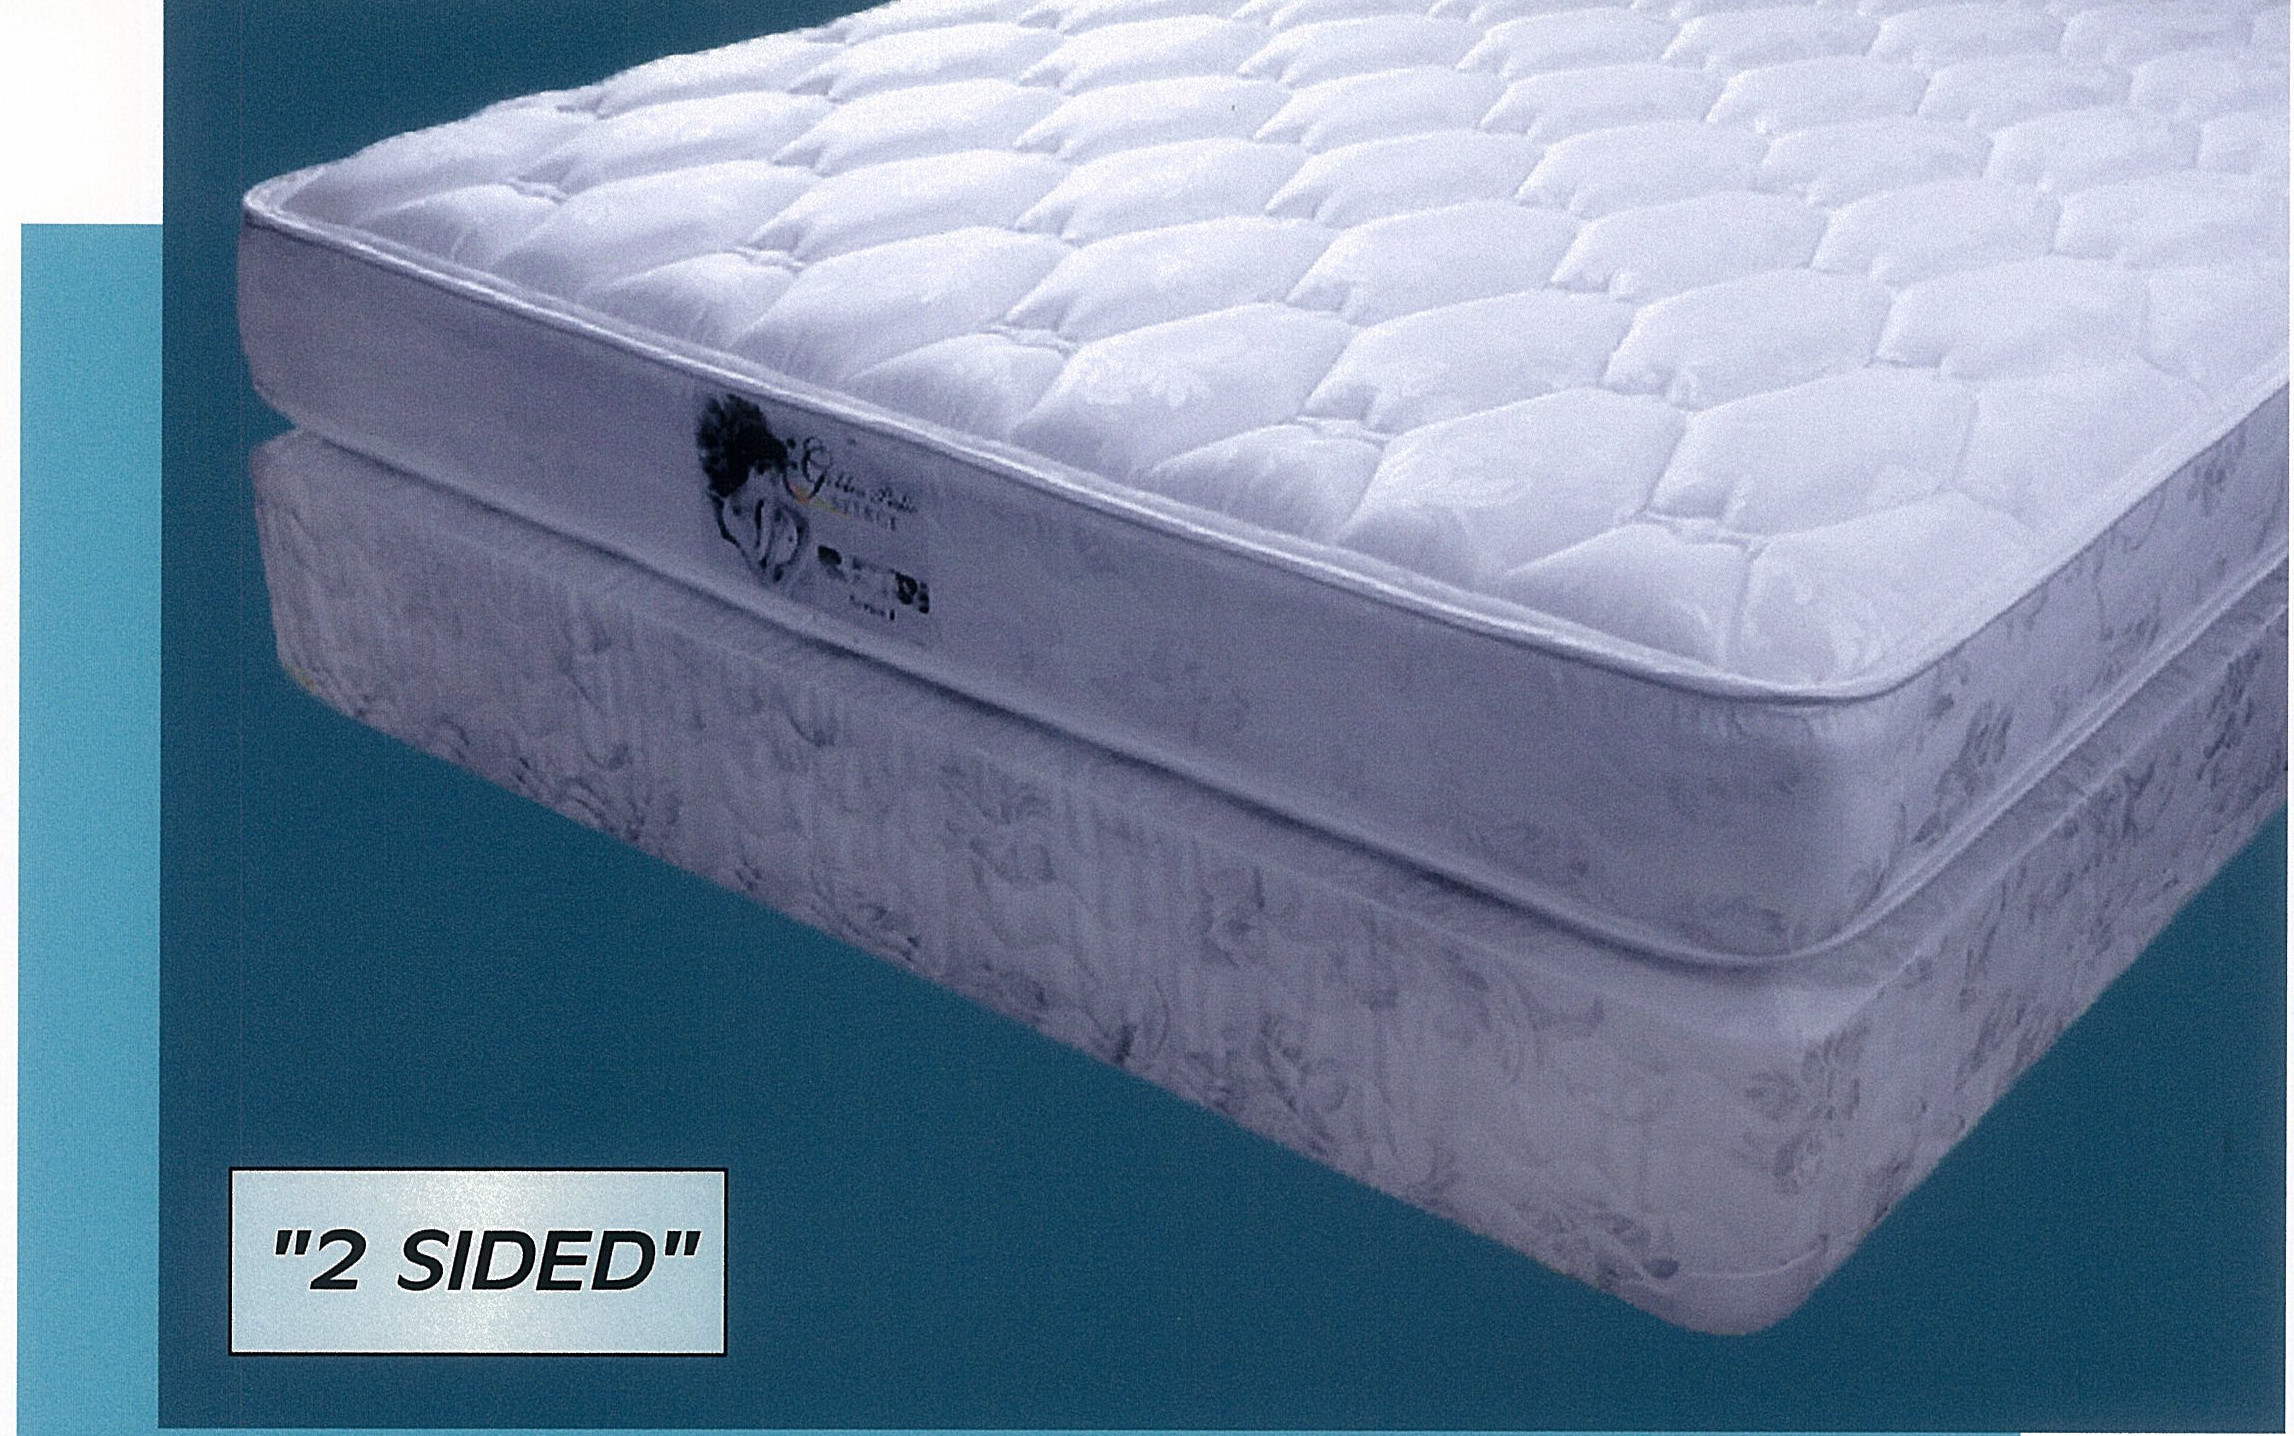 Laporte mattress and furniture high value low cost home for La porte tx breaking news